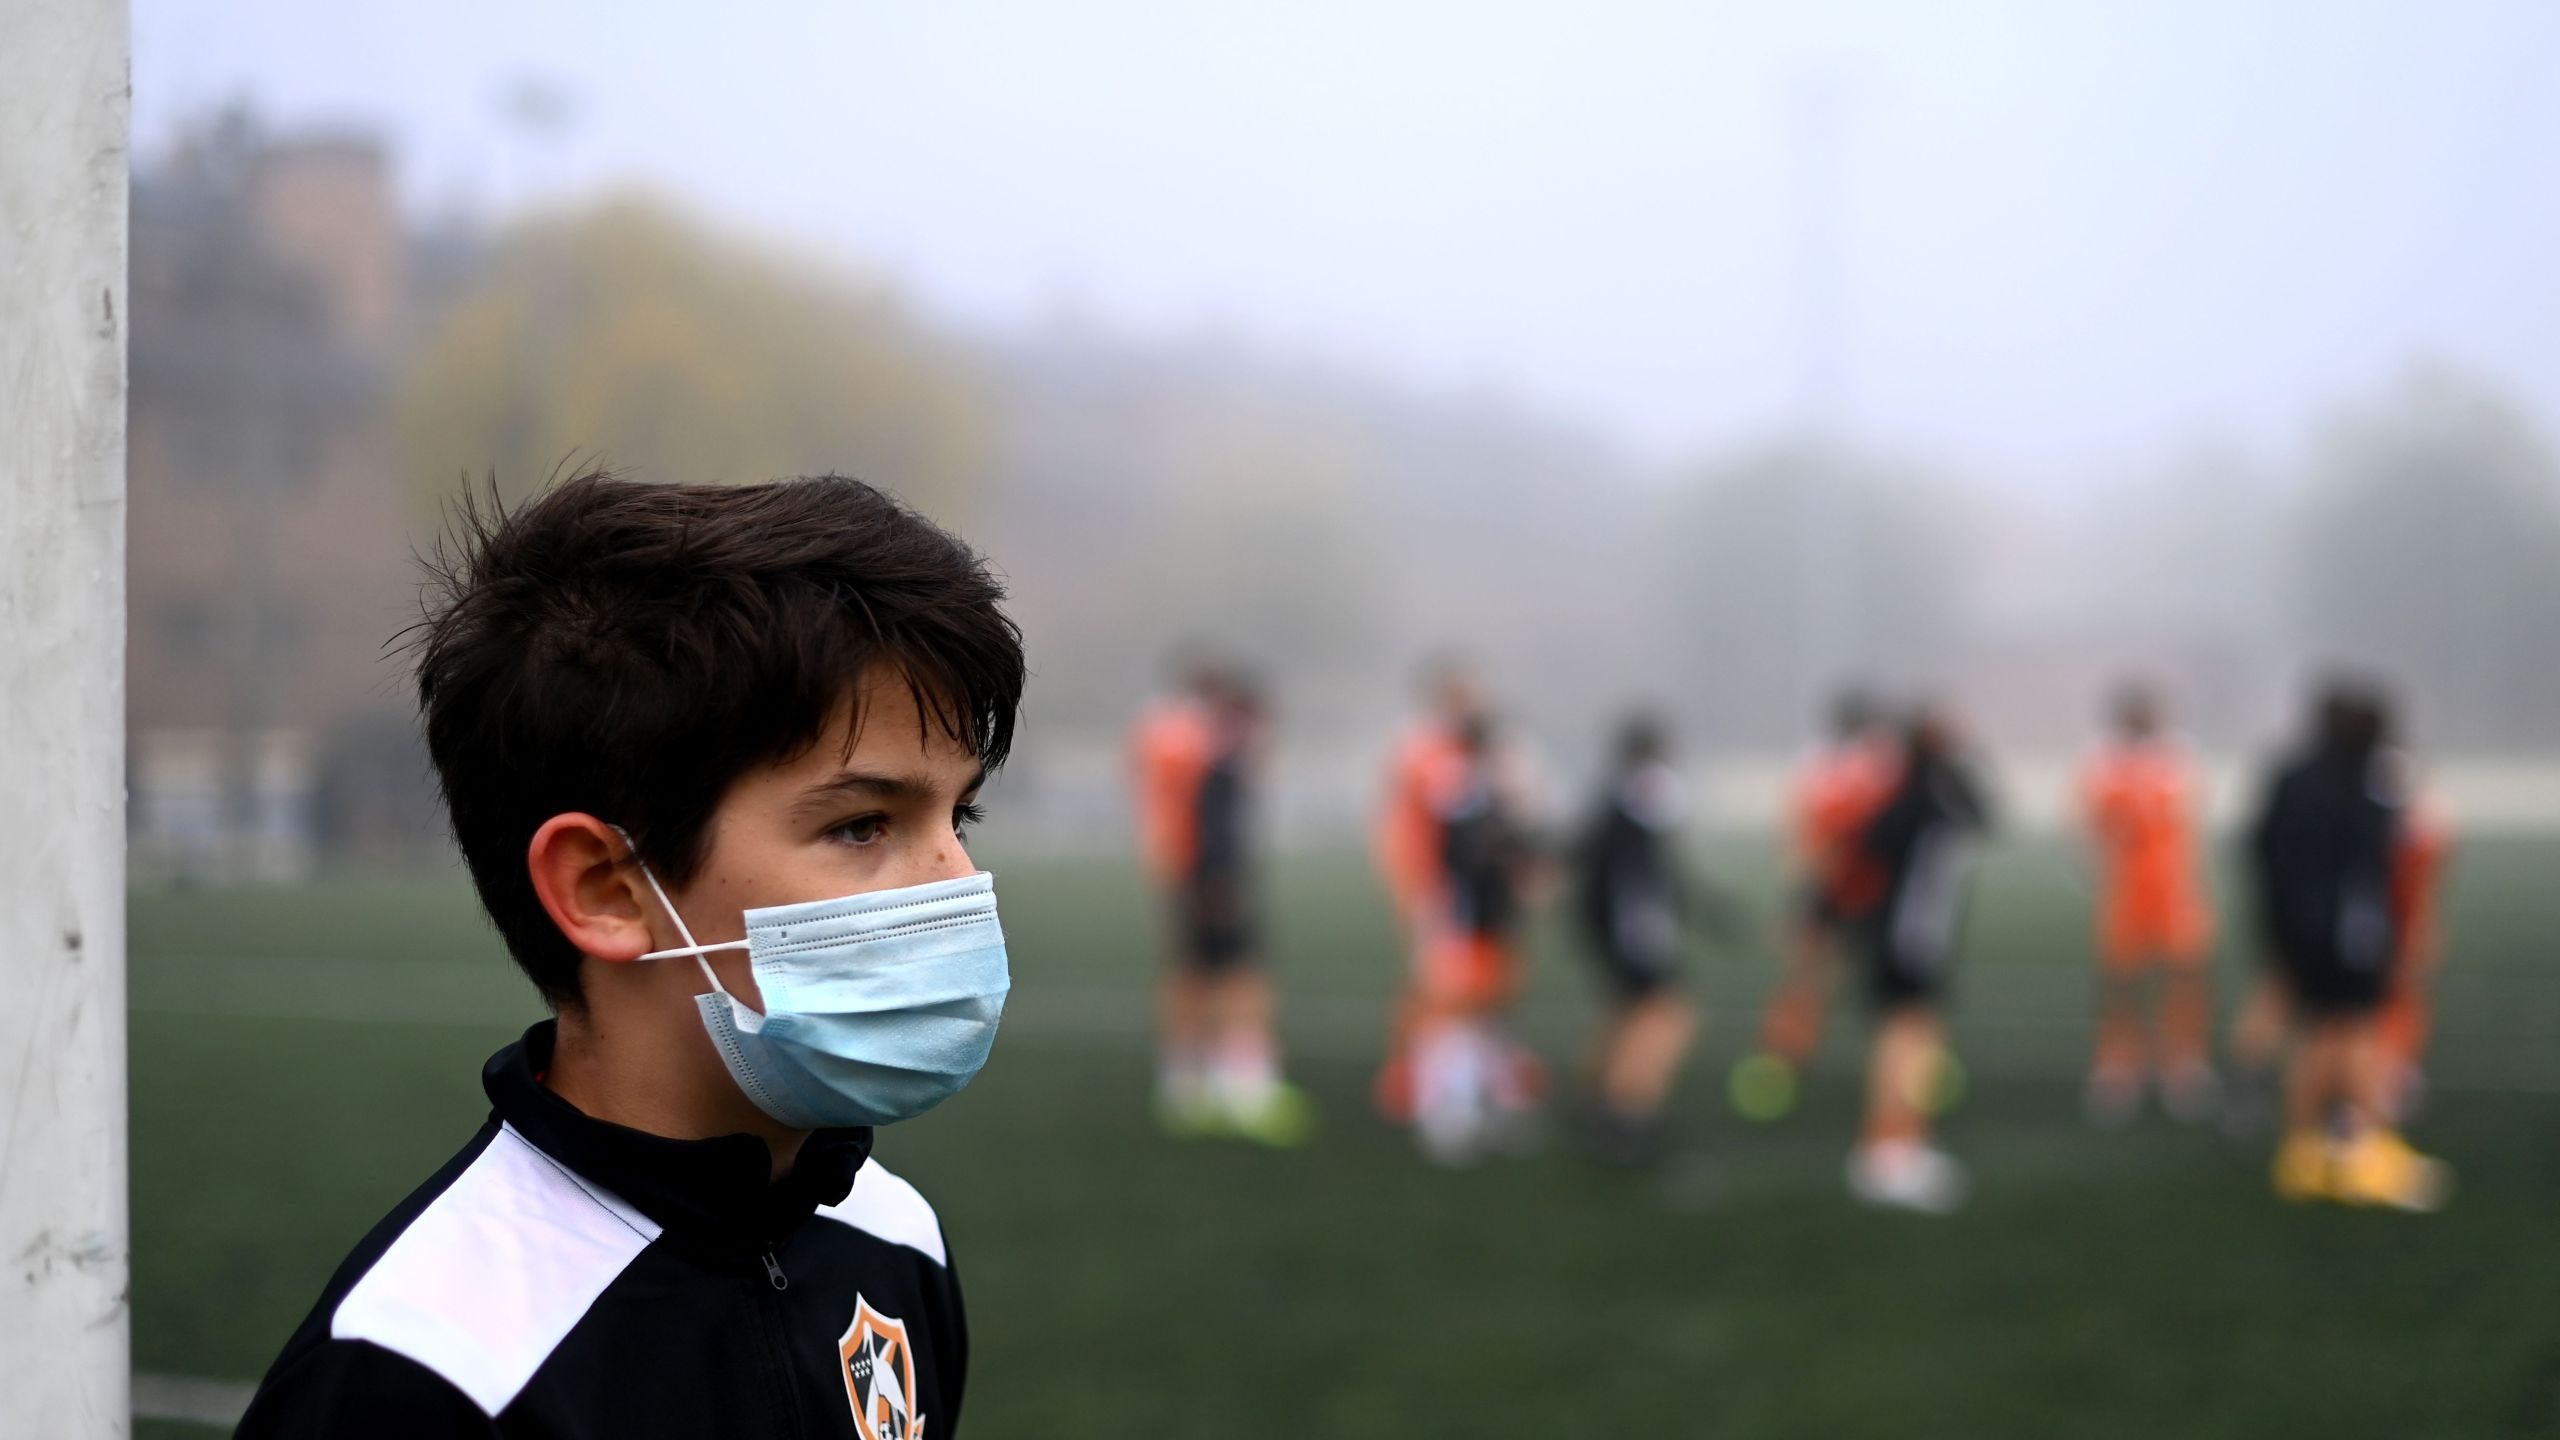 A boy wearing a face mask to protect against the spread of the novel coronavirus attends a football match with his team of Football Player Academy (FPA) Las Rozas in Las Rozas, outside Madrid, on Oct. 24, 2020. (Gabriel Bouys / AFP)